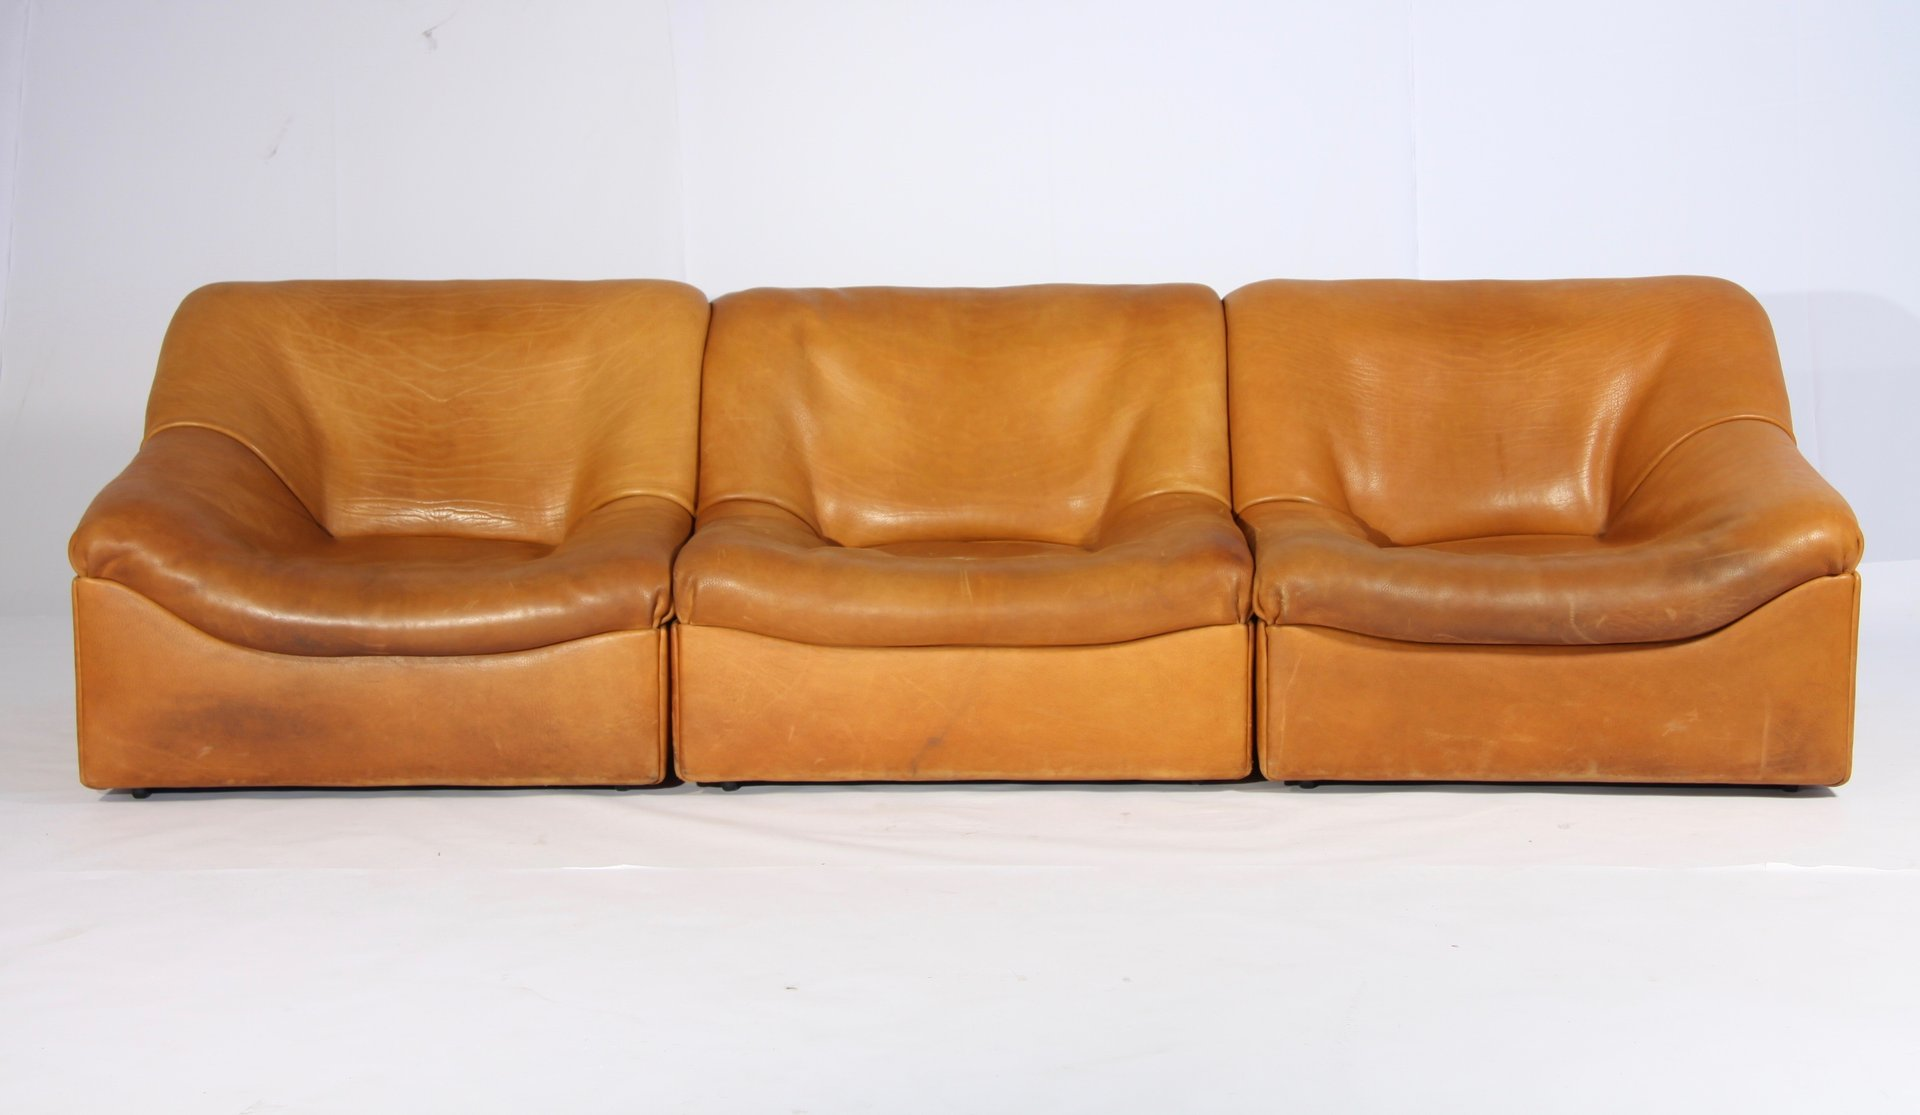 DS 46 Thick Buffalo Leather Lounging Chairs From De Sede, 1970s, Set Of 3